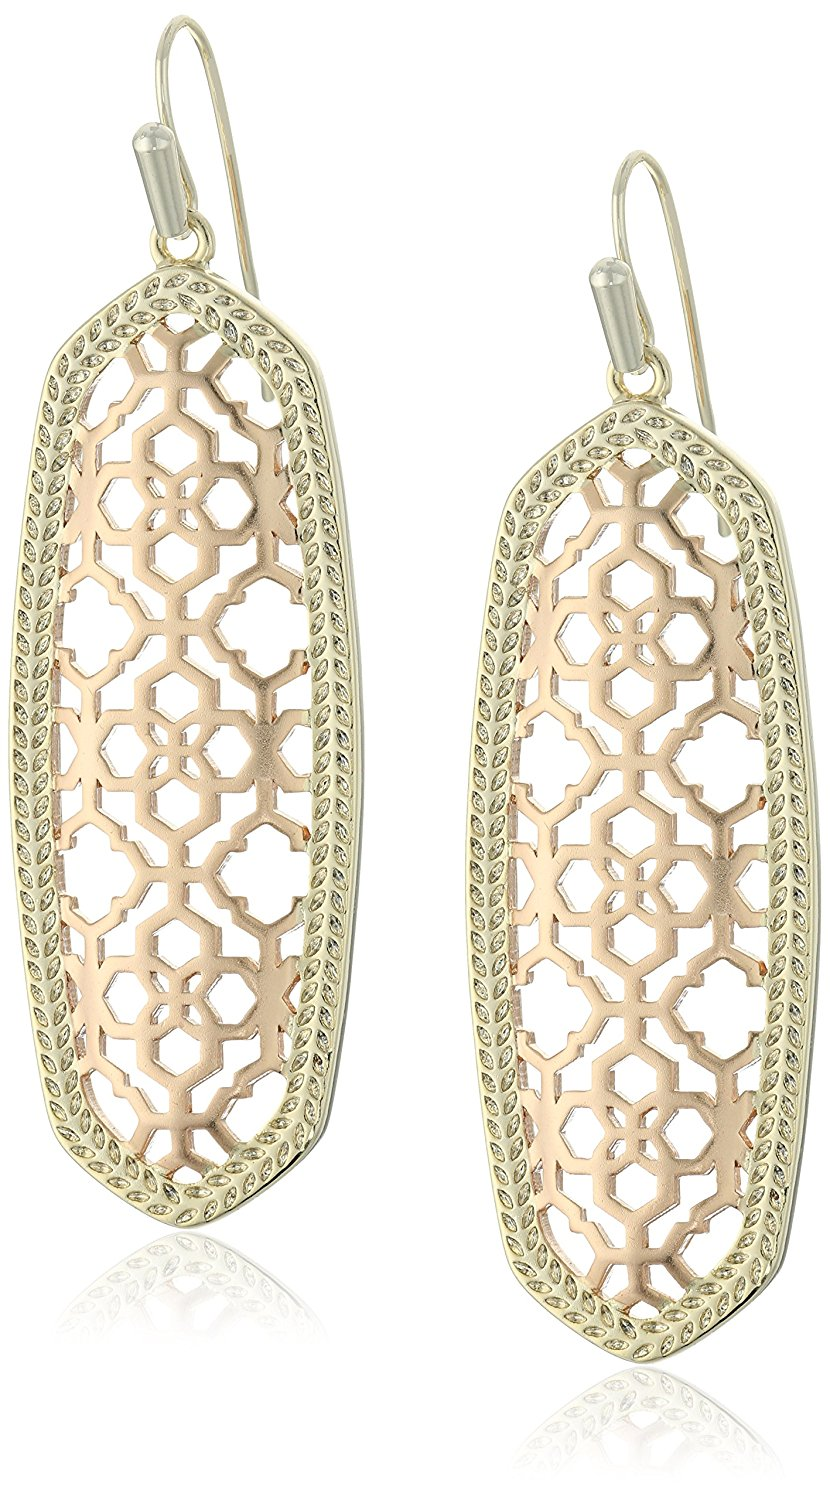 Com kendra scott brenden rose gold drop earrings jewelry amazon kendra scott brenden rose gold drop earrings jewelry arubaitofo Images